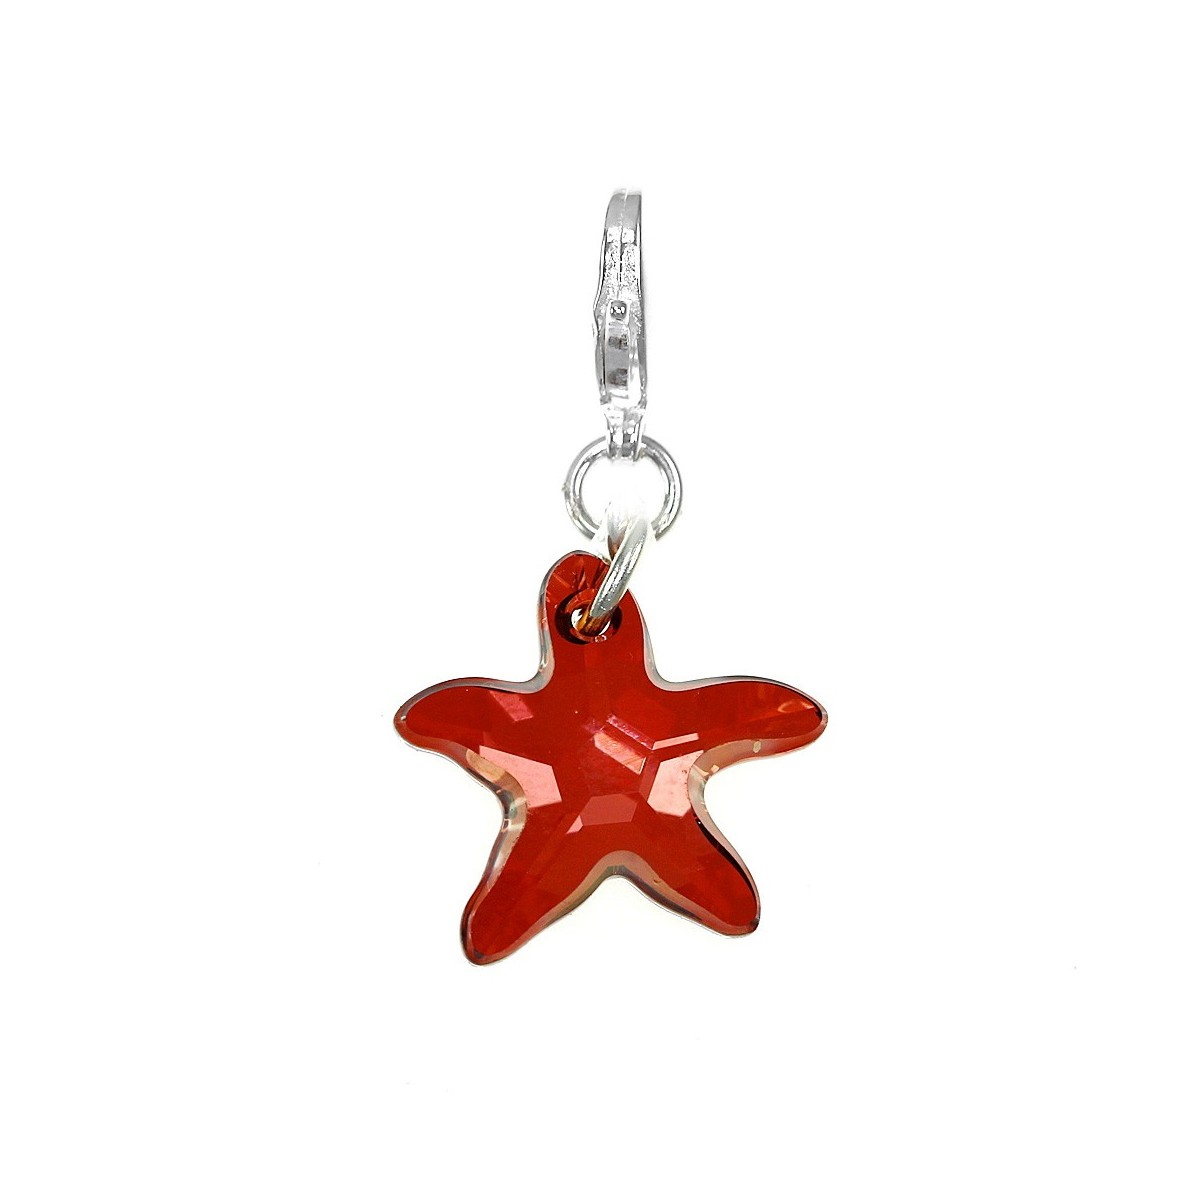 Charm étoile de mer rouge So Charm made with Crystal from Swarovski